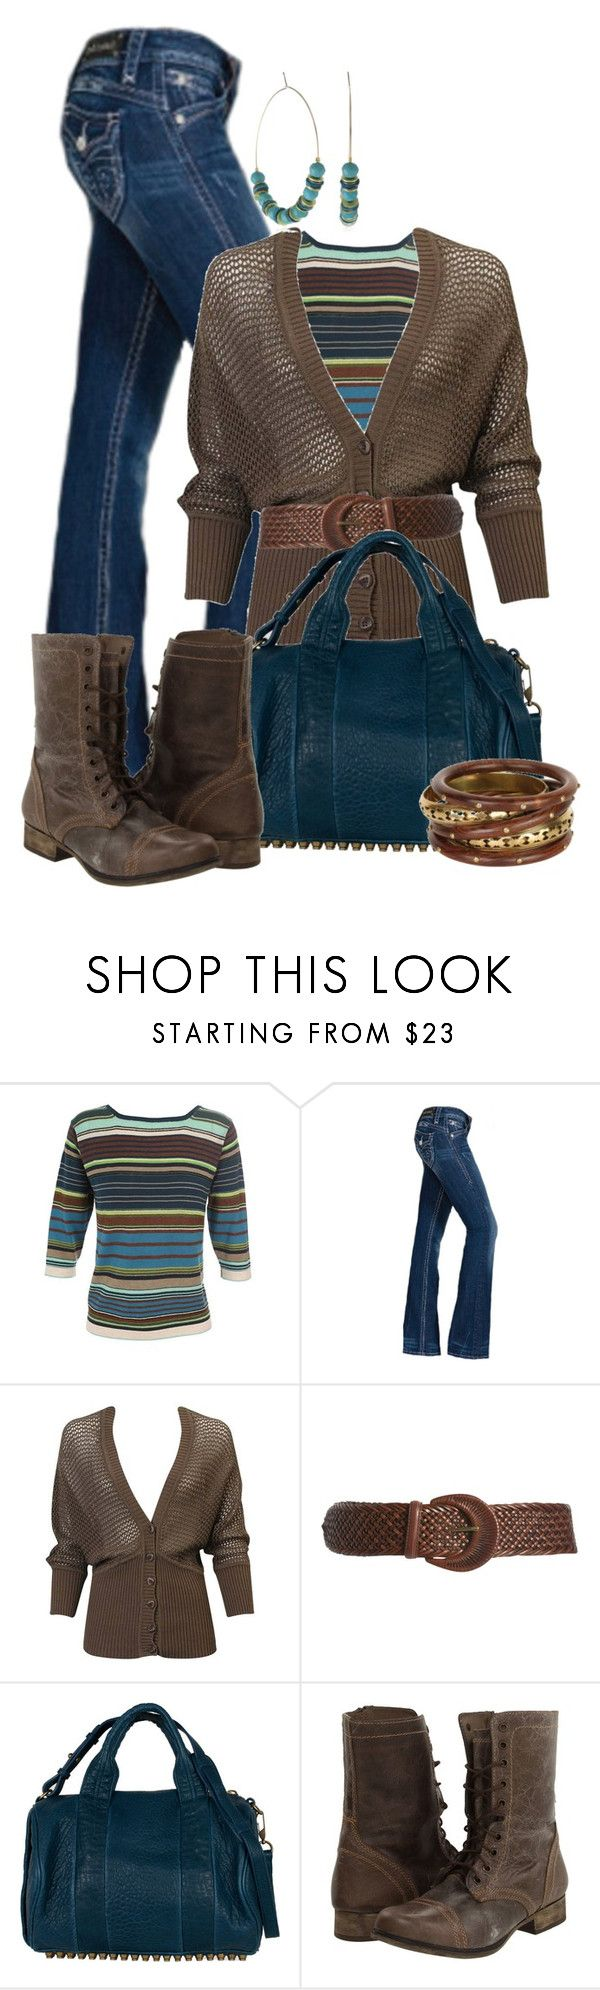 """""""Untitled #336"""" by johnna-cameron ❤ liked on Polyvore featuring Diane De Clercq, Rock Revival, Forever 21, Lauren Ralph Lauren, Steve Madden and Lulu Designs"""